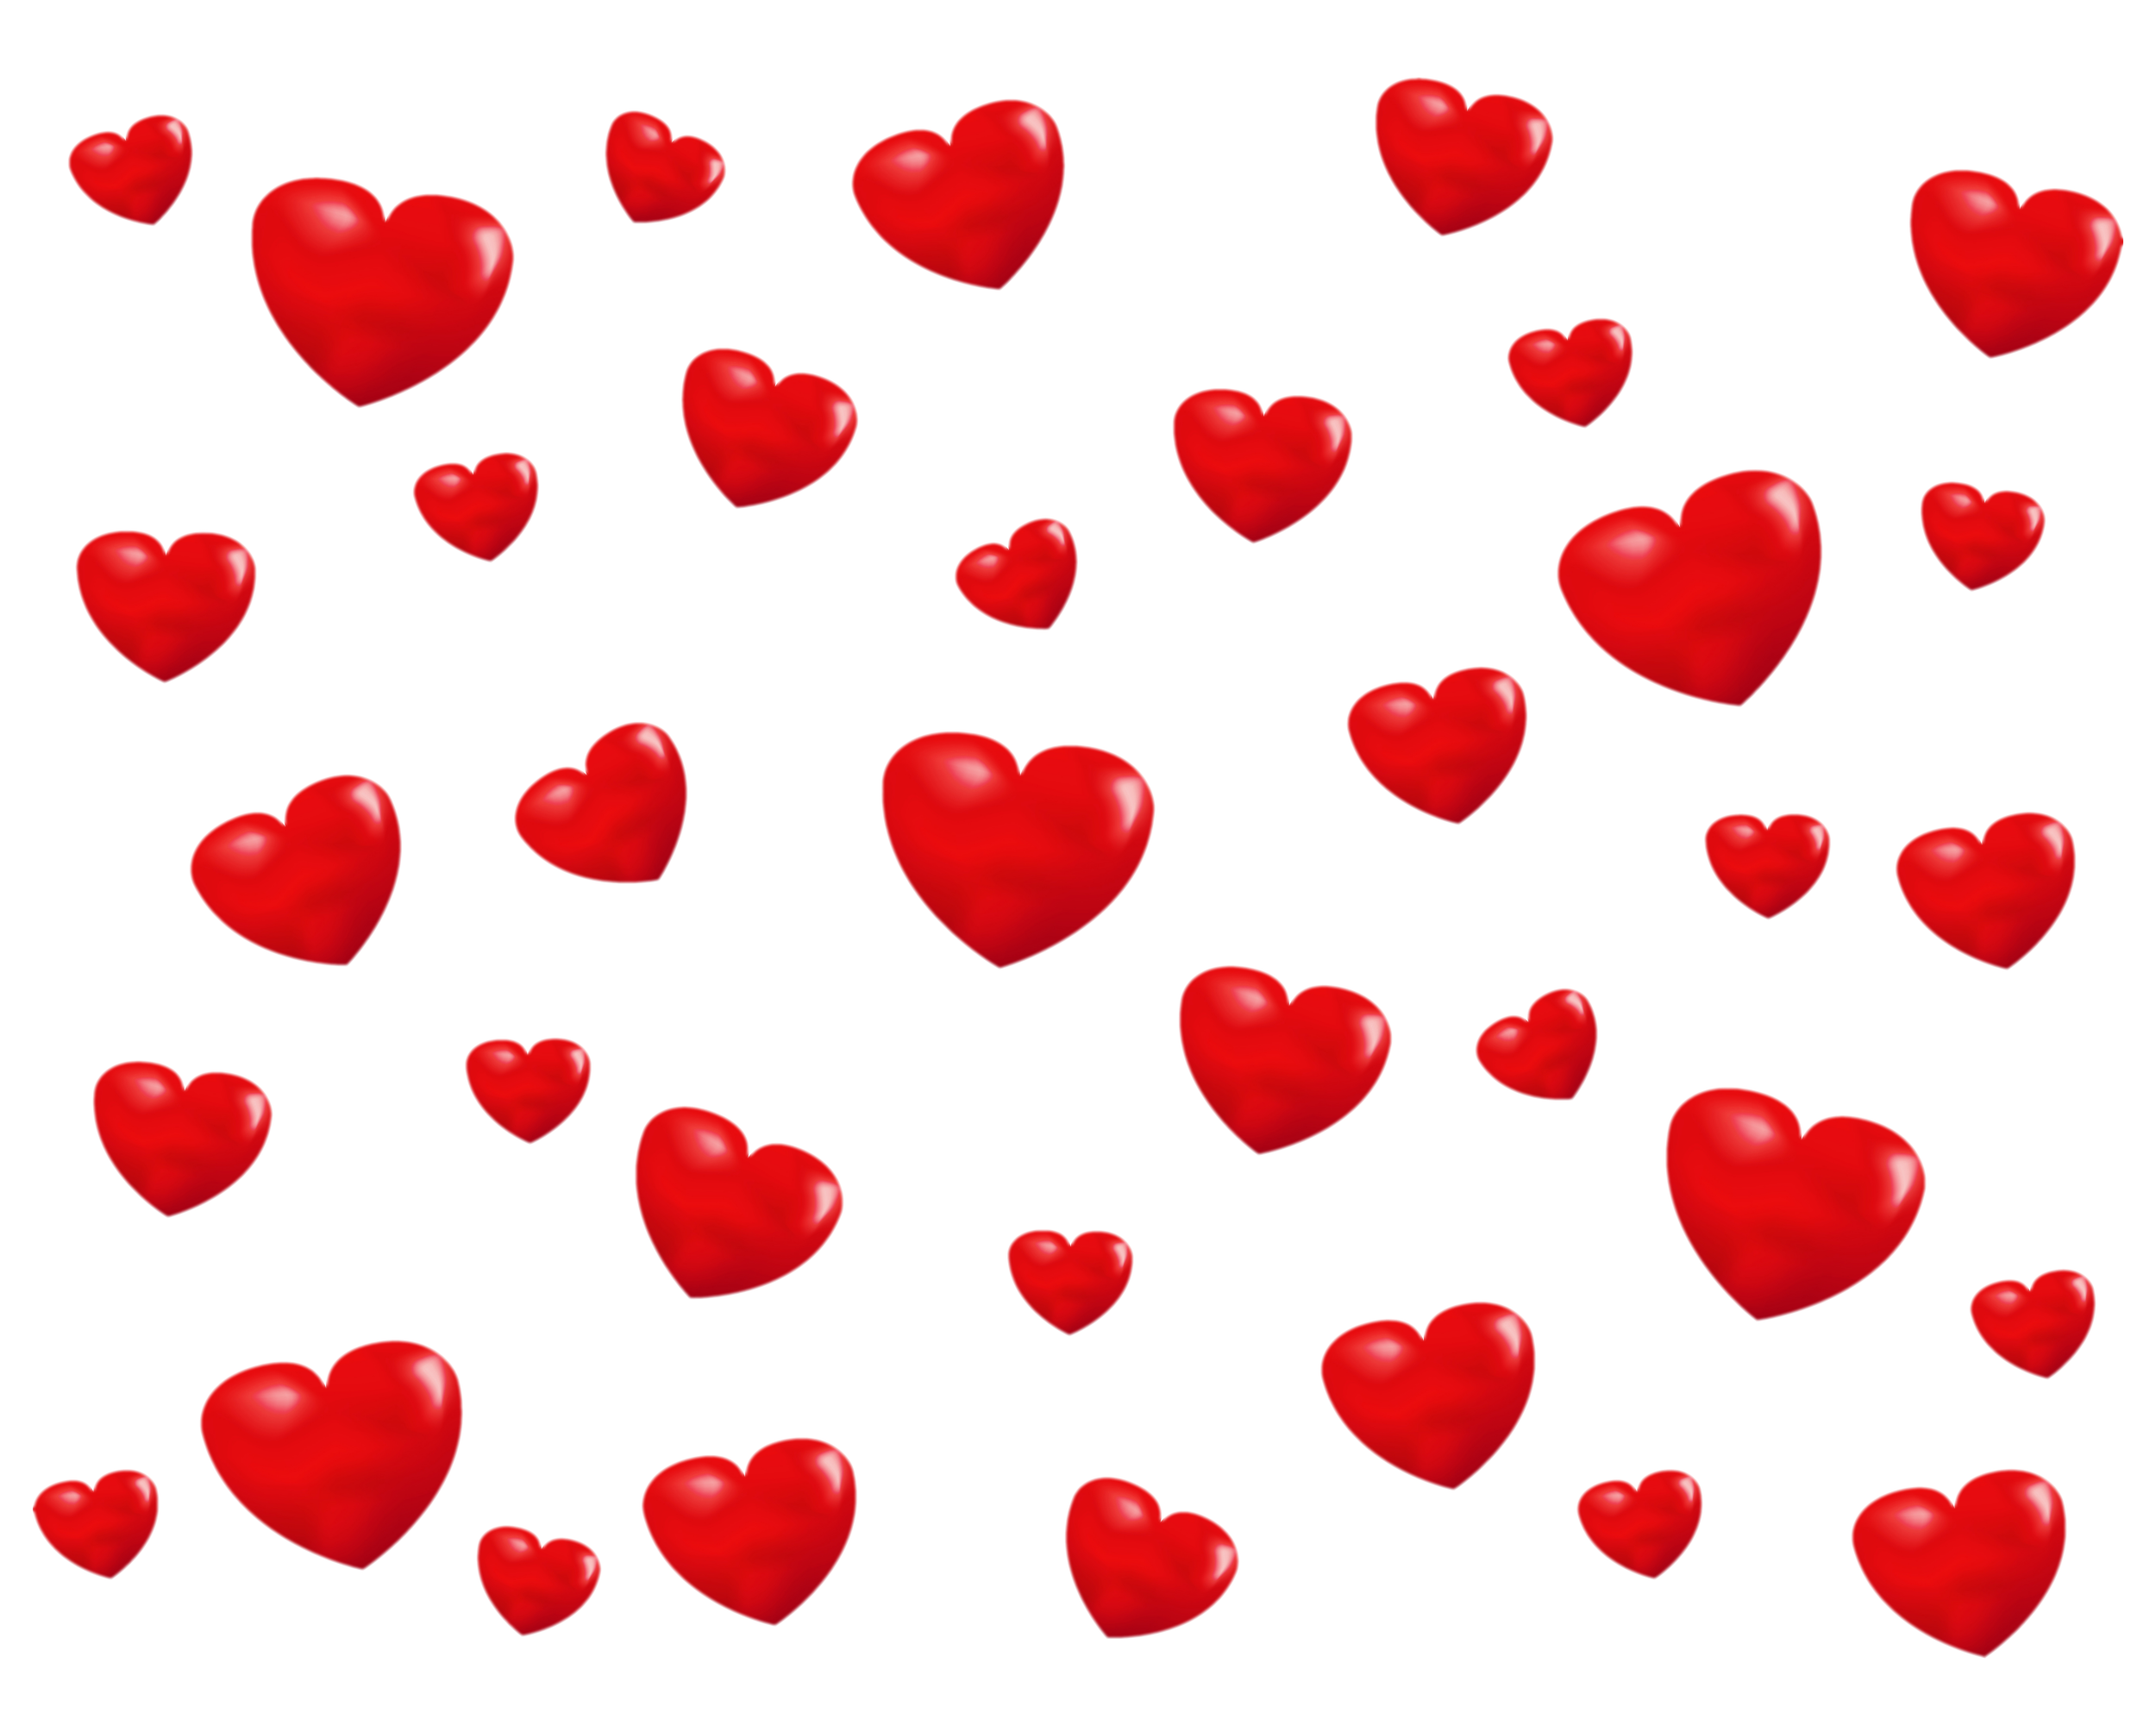 Heart PNG HD Transparent Background Transparent Heart HD Transparent.